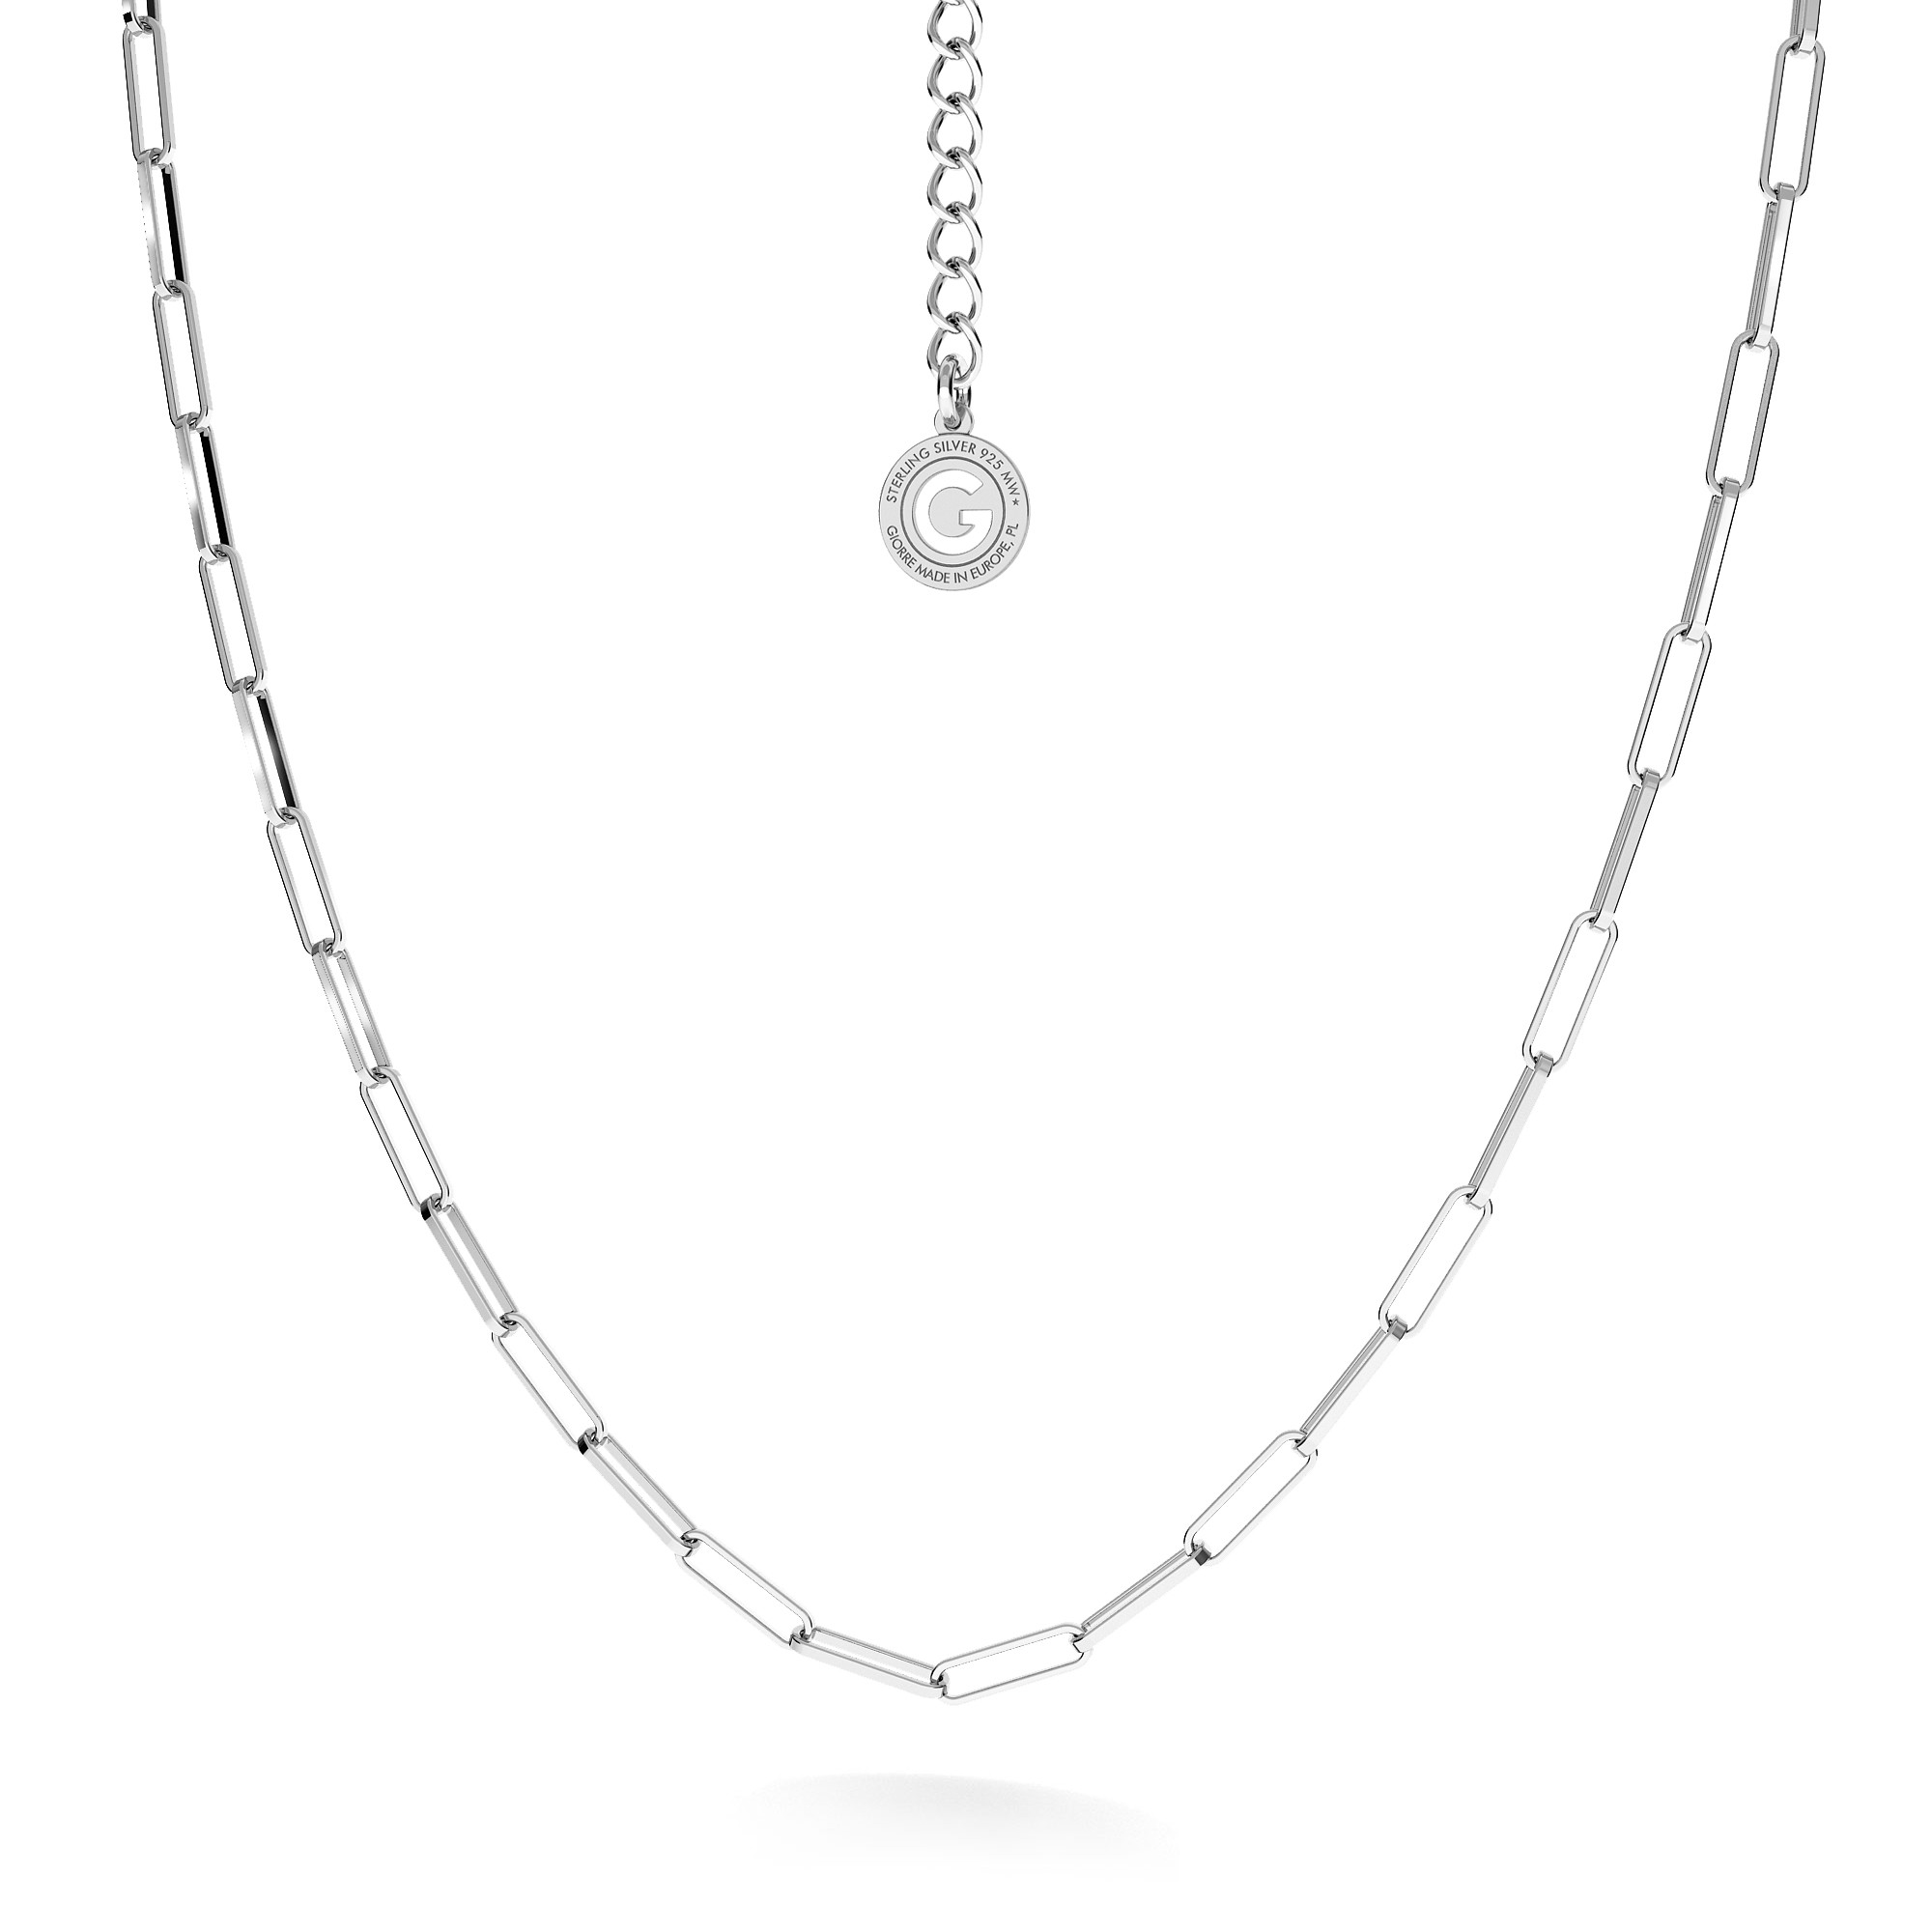 Silver chain charms base sterling silver 925